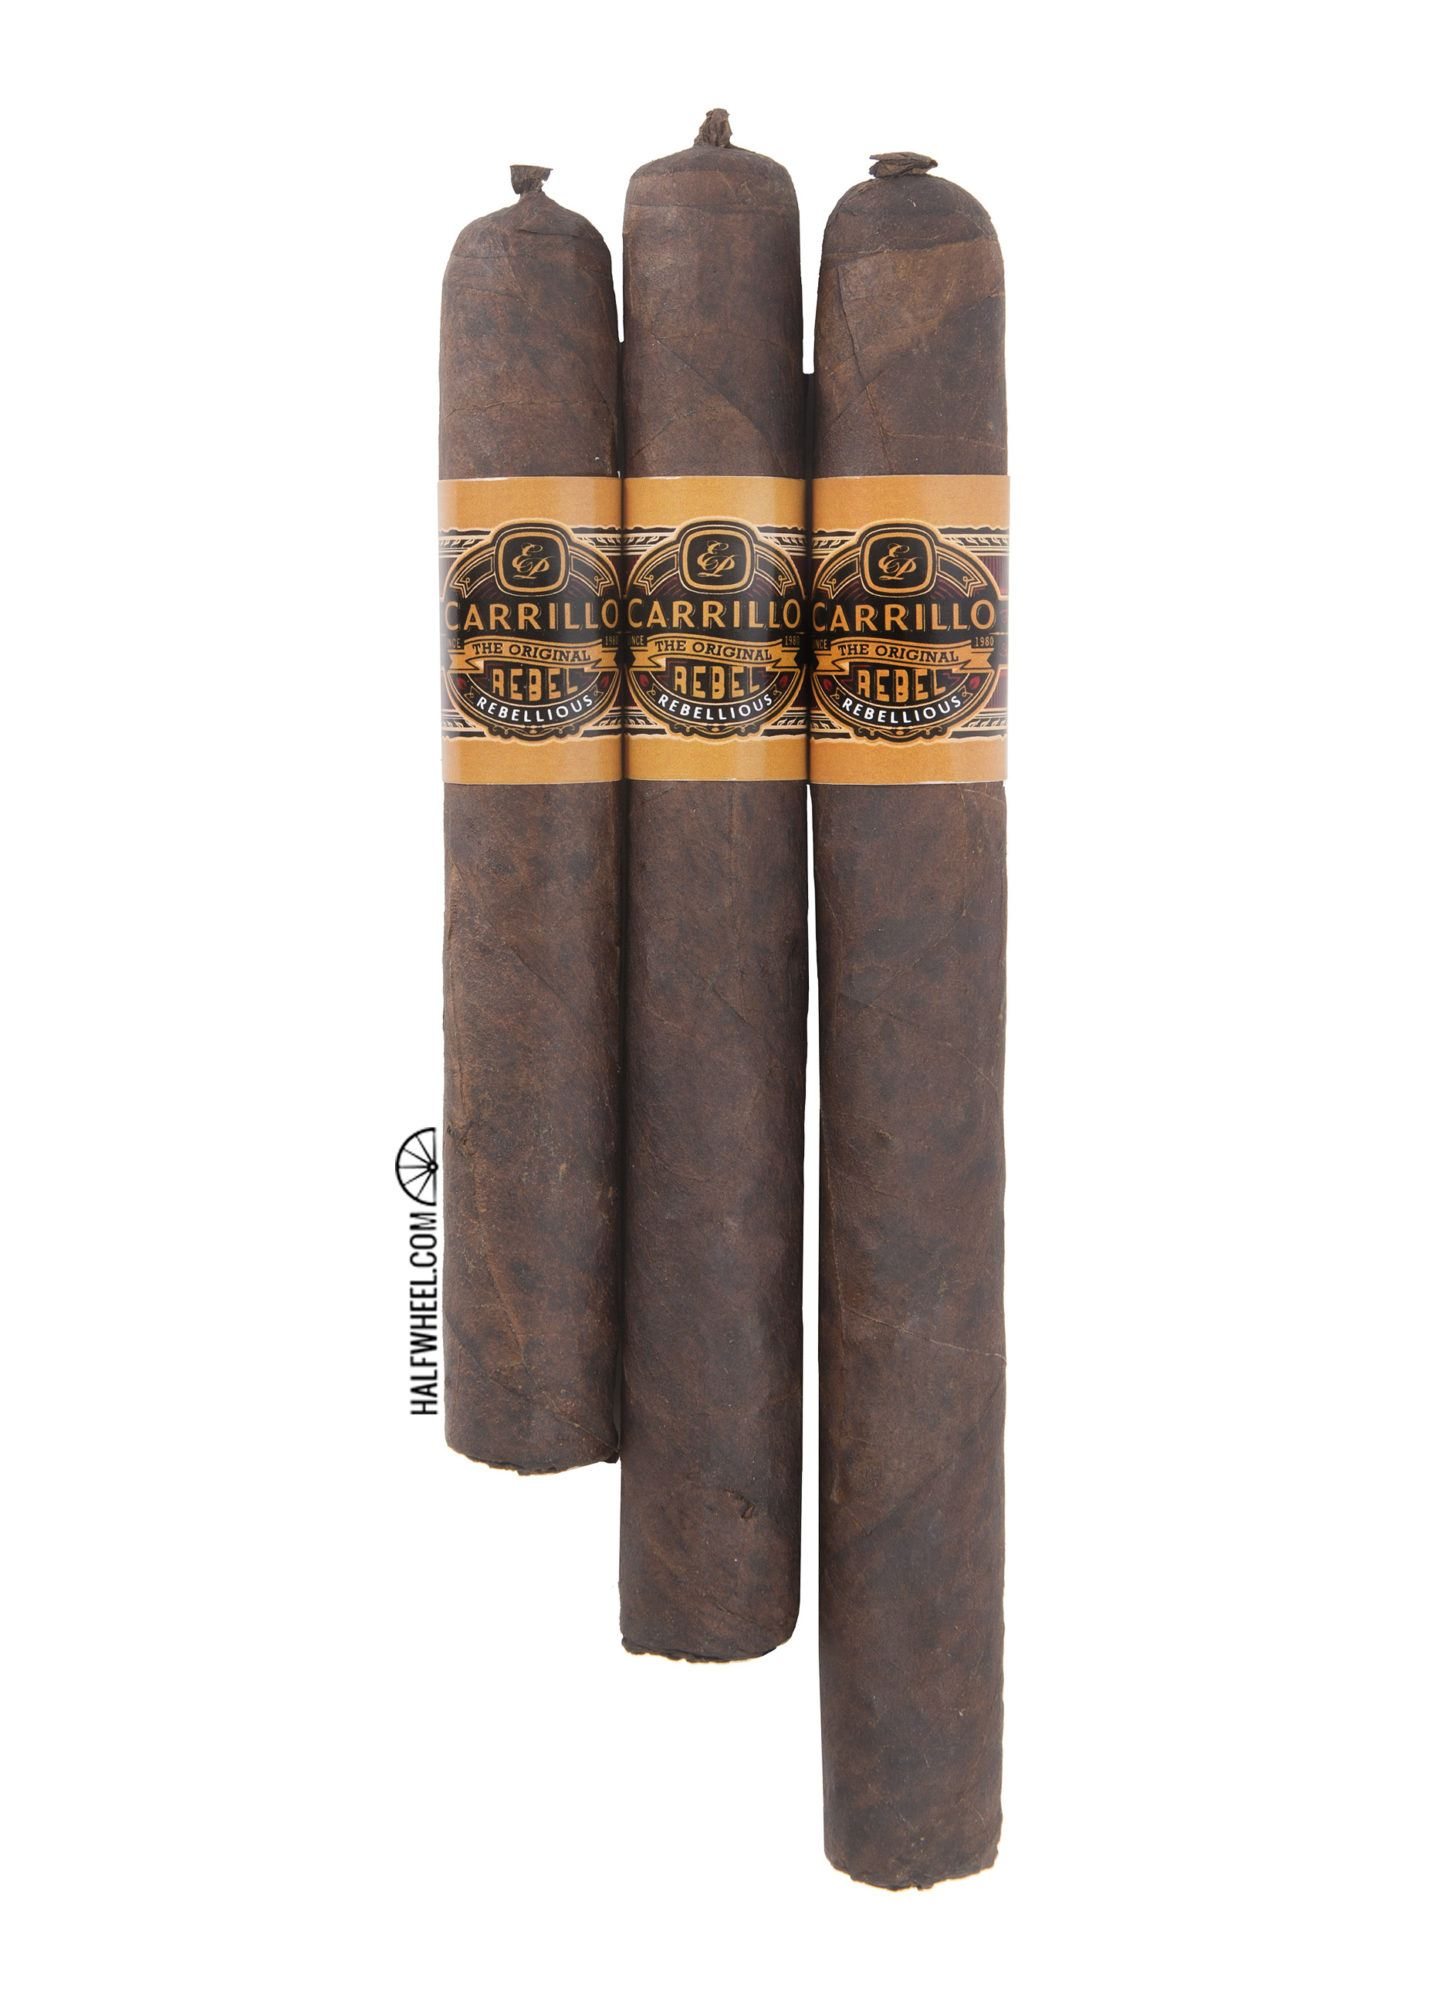 e-p-carrillo-original-rebel-rebellious-vitolas